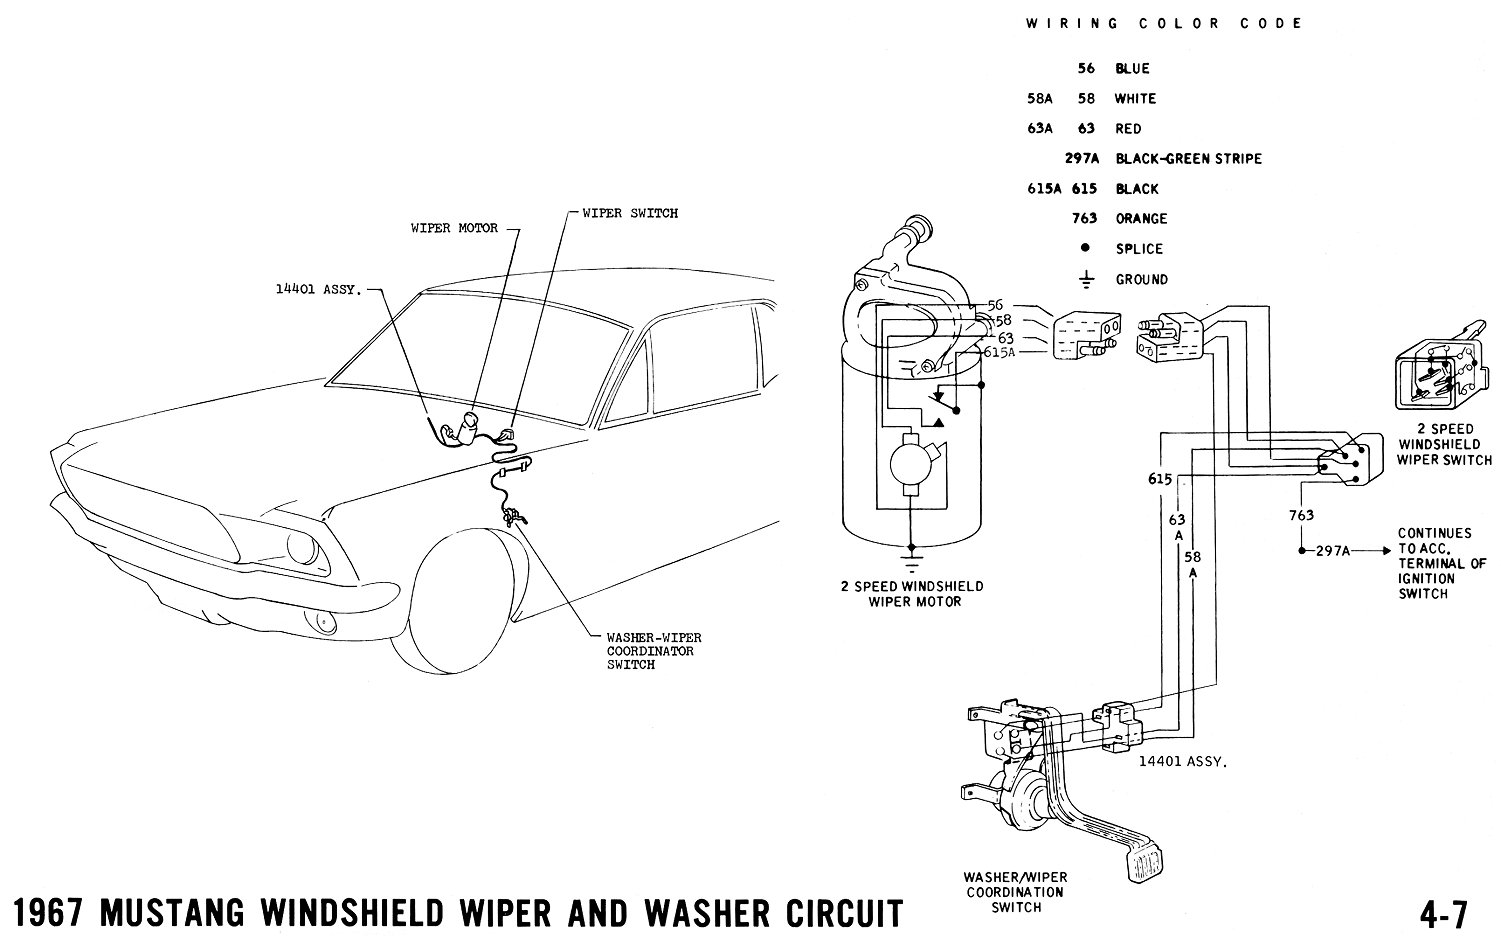 Chevy Truck Windshield Wiper Motor Wiring Harness 2sd19641966 Diagram 69 Camaro Schematic Library1967 Mustang Wipers Pictorial And